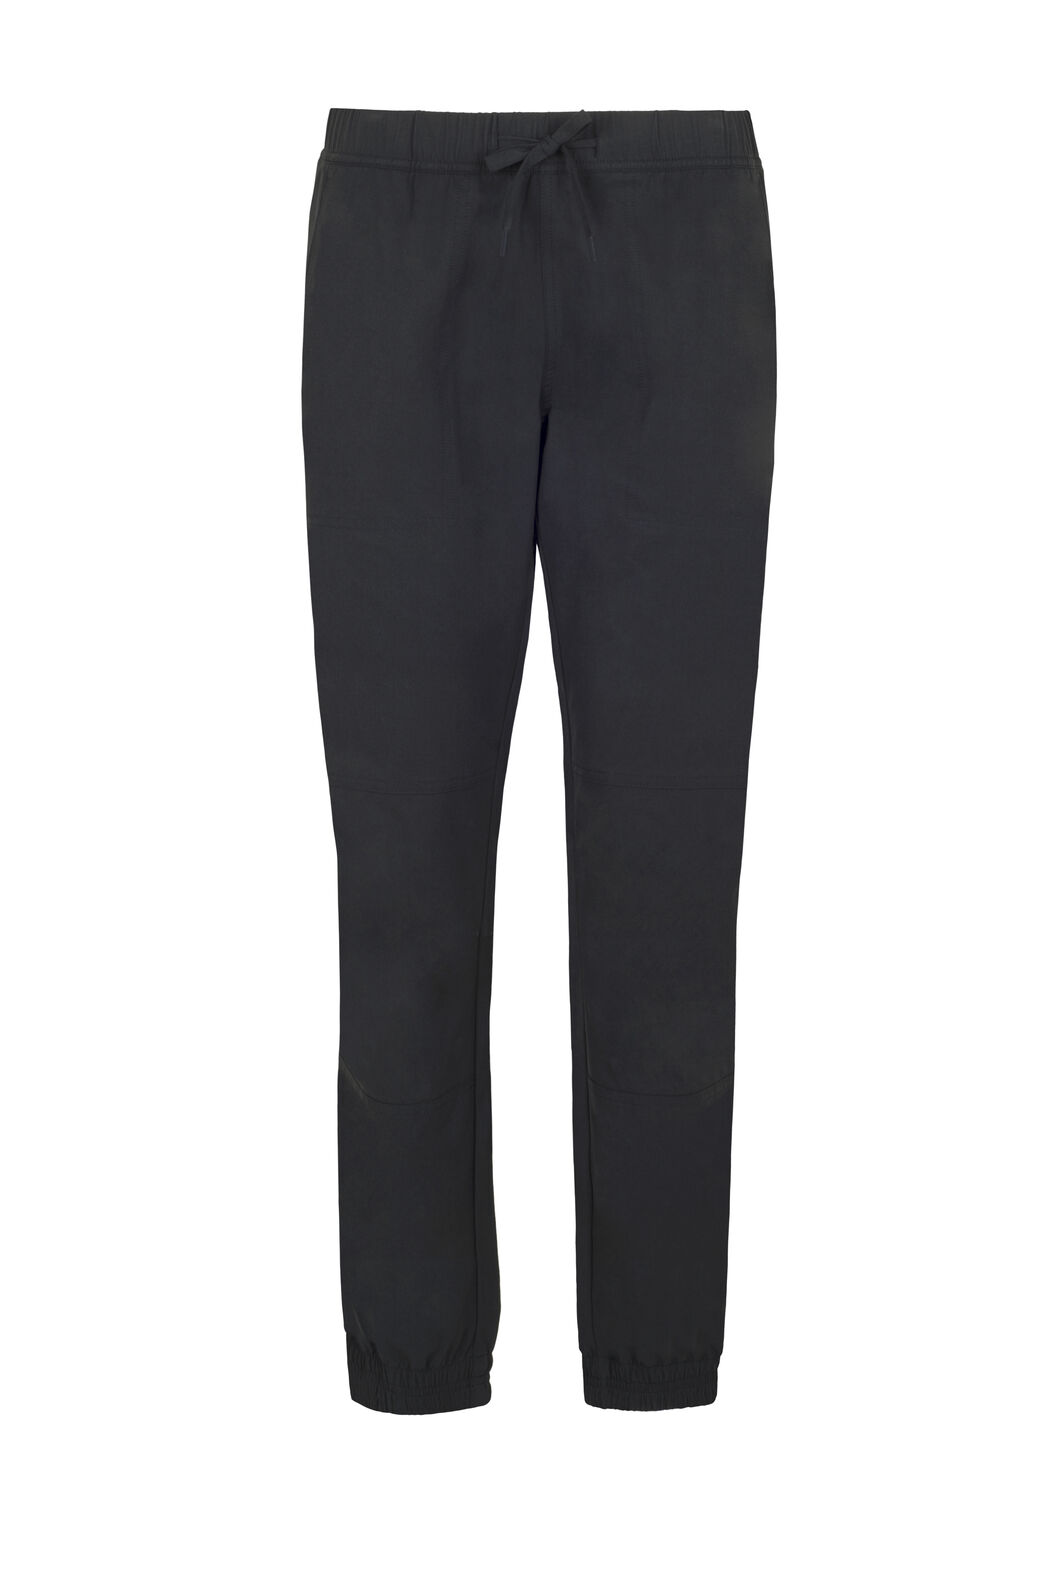 Macpac Casey Pants — Women's, Black, hi-res